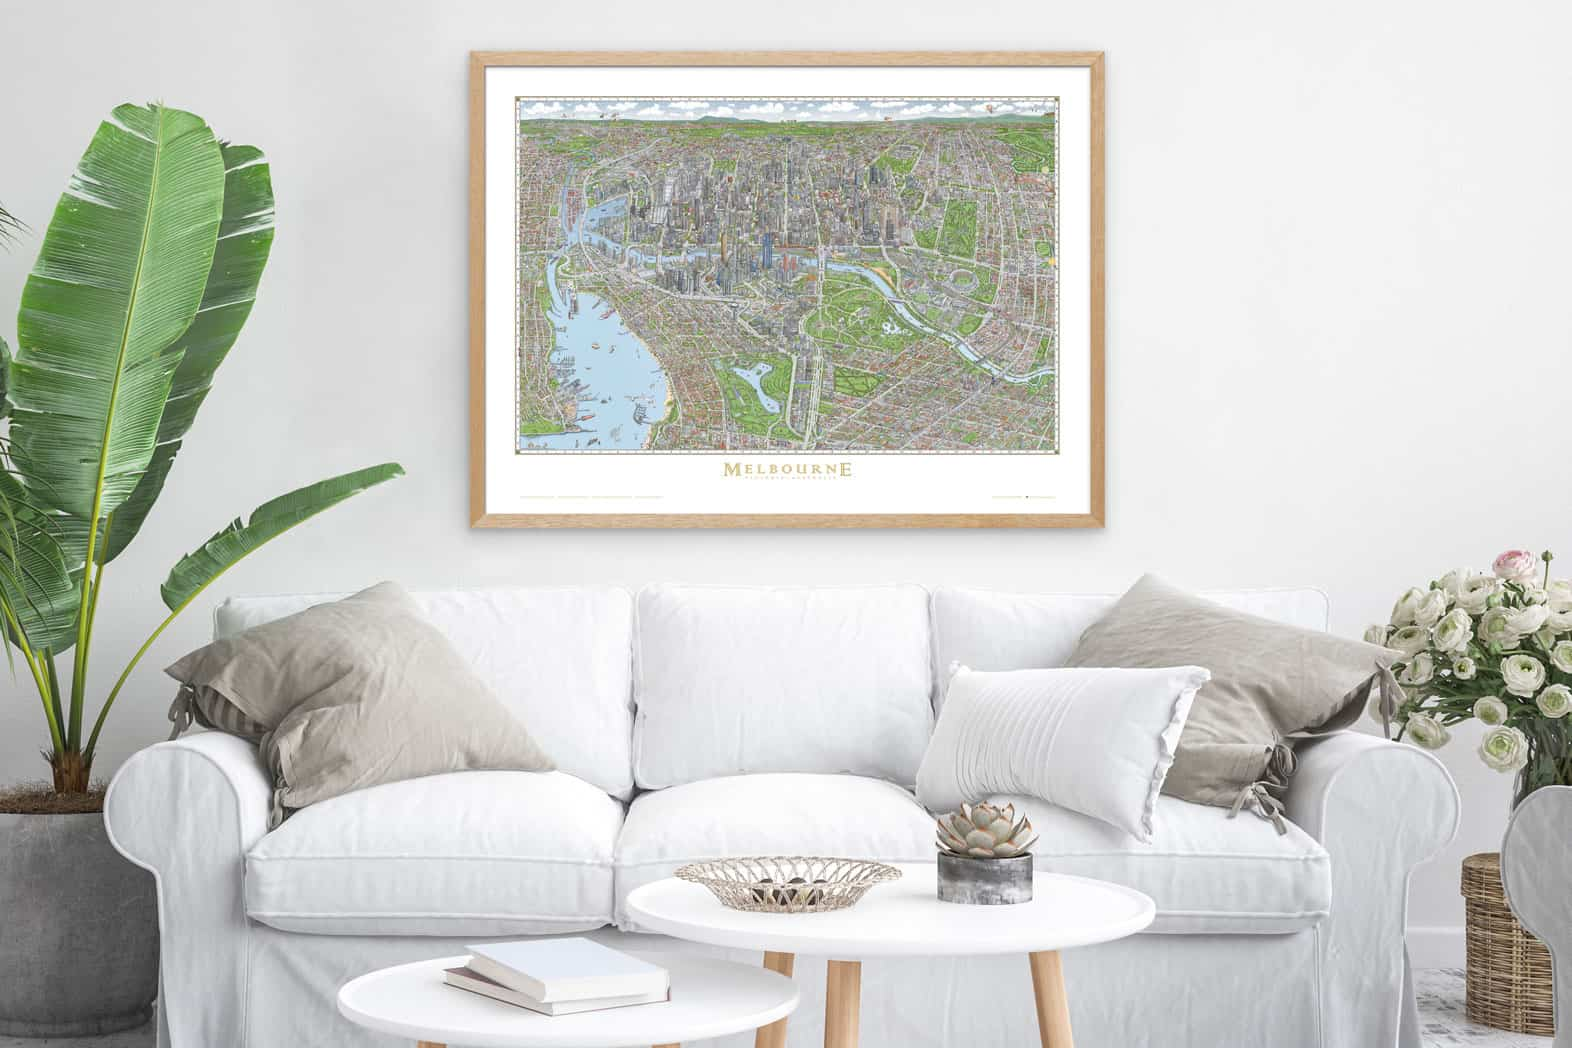 The Melbourne Map oak picture frame wooden picture frame poster frames